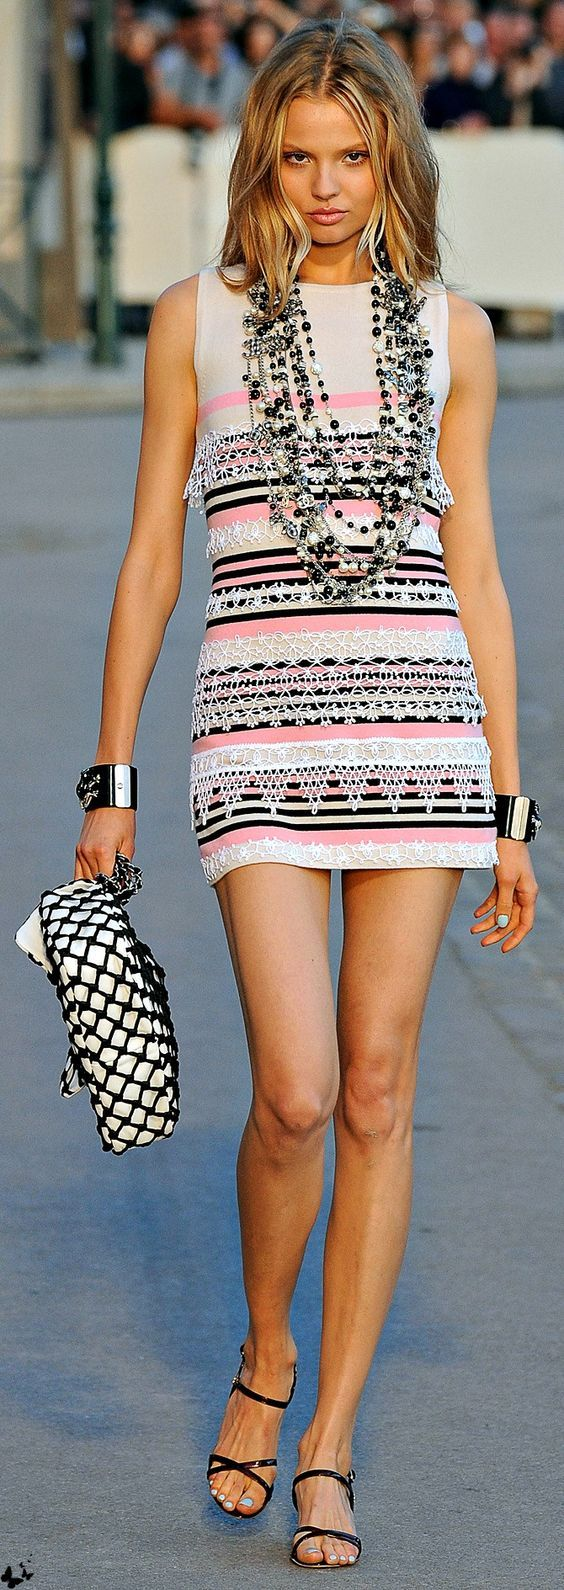 White dress dream meaning - Chanel